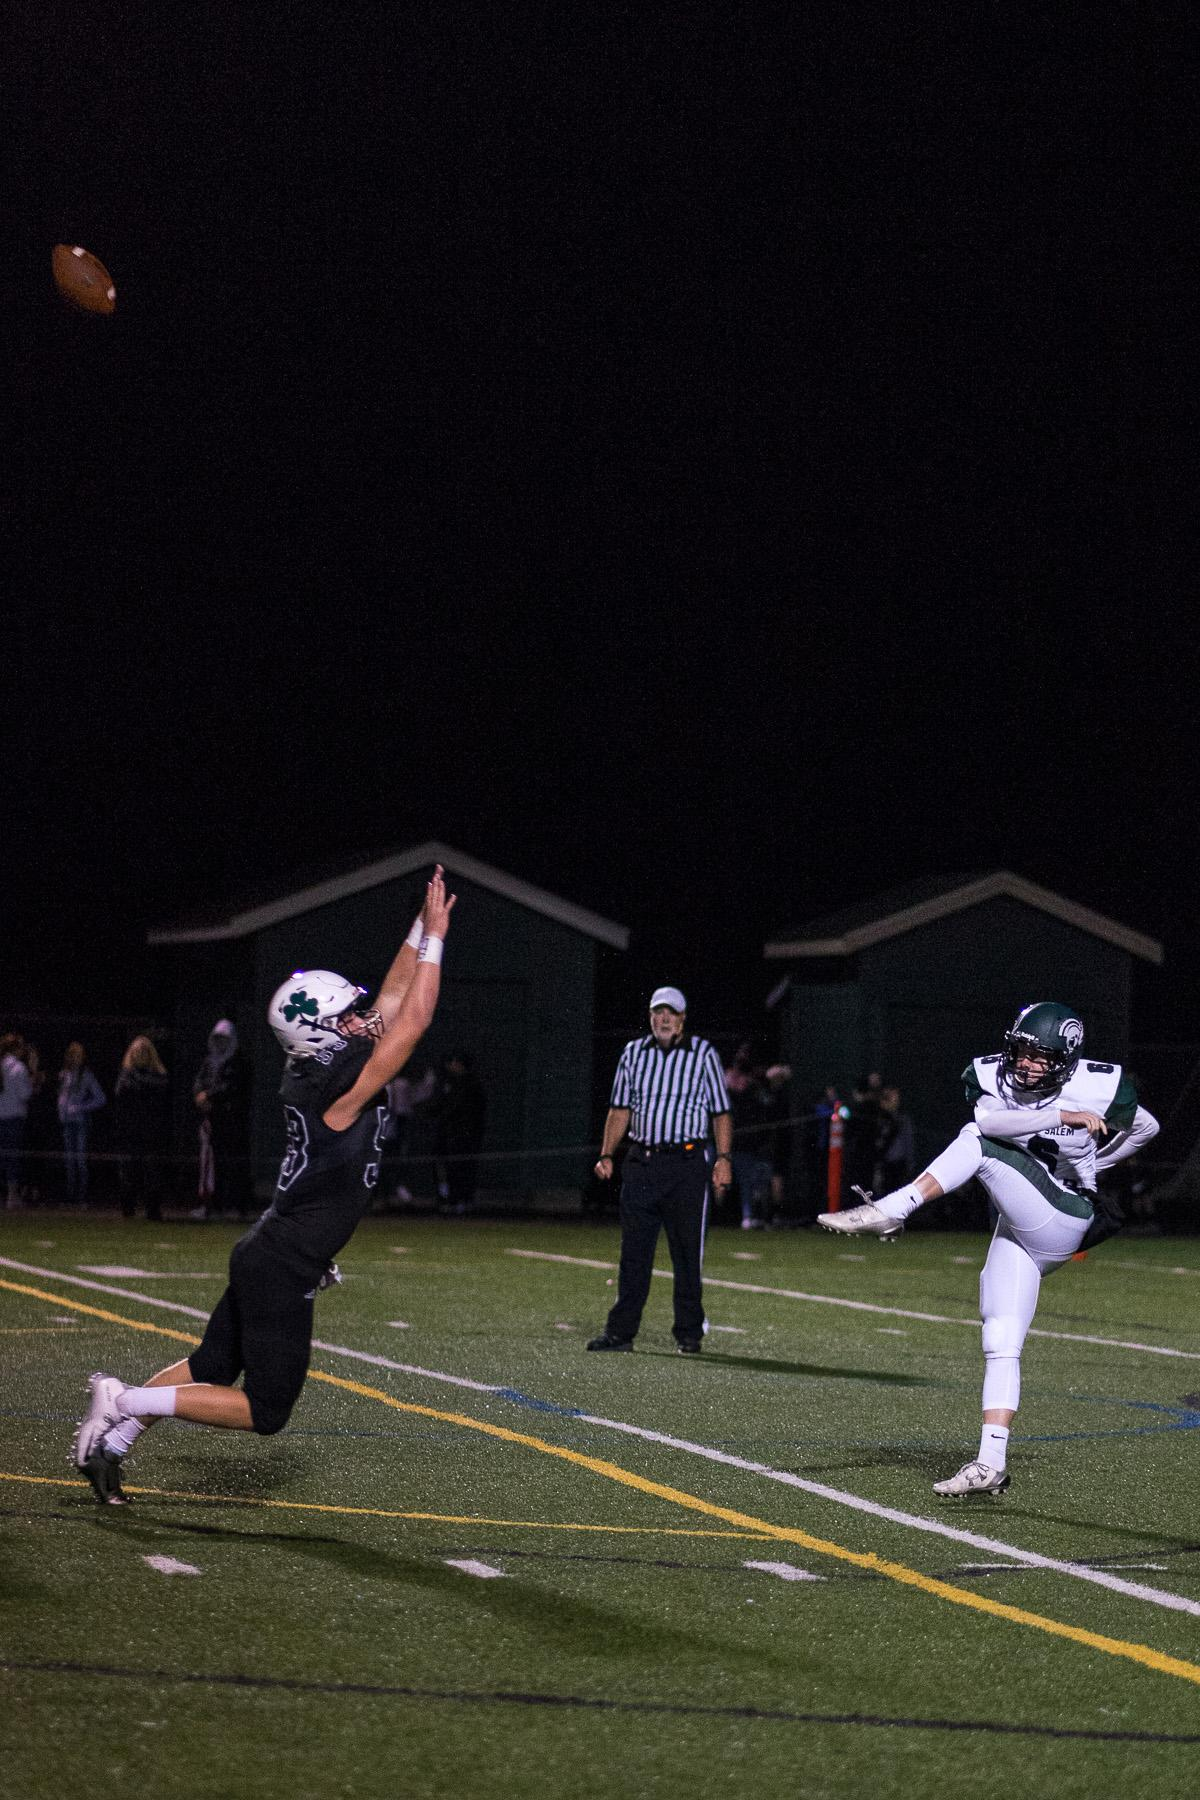 West Salem's Andrew Bartholomew (#6) punts the ball past Sheldon's defense. On a rainy Monday evening, Sheldon defeated West Salem at home 41 – 7. The game had been postponed until Monday, September 18, due to unhealthy levels of smoke in the air caused by nearby forest fires. Photo by Kit MacAvoy, Oregon News Lab